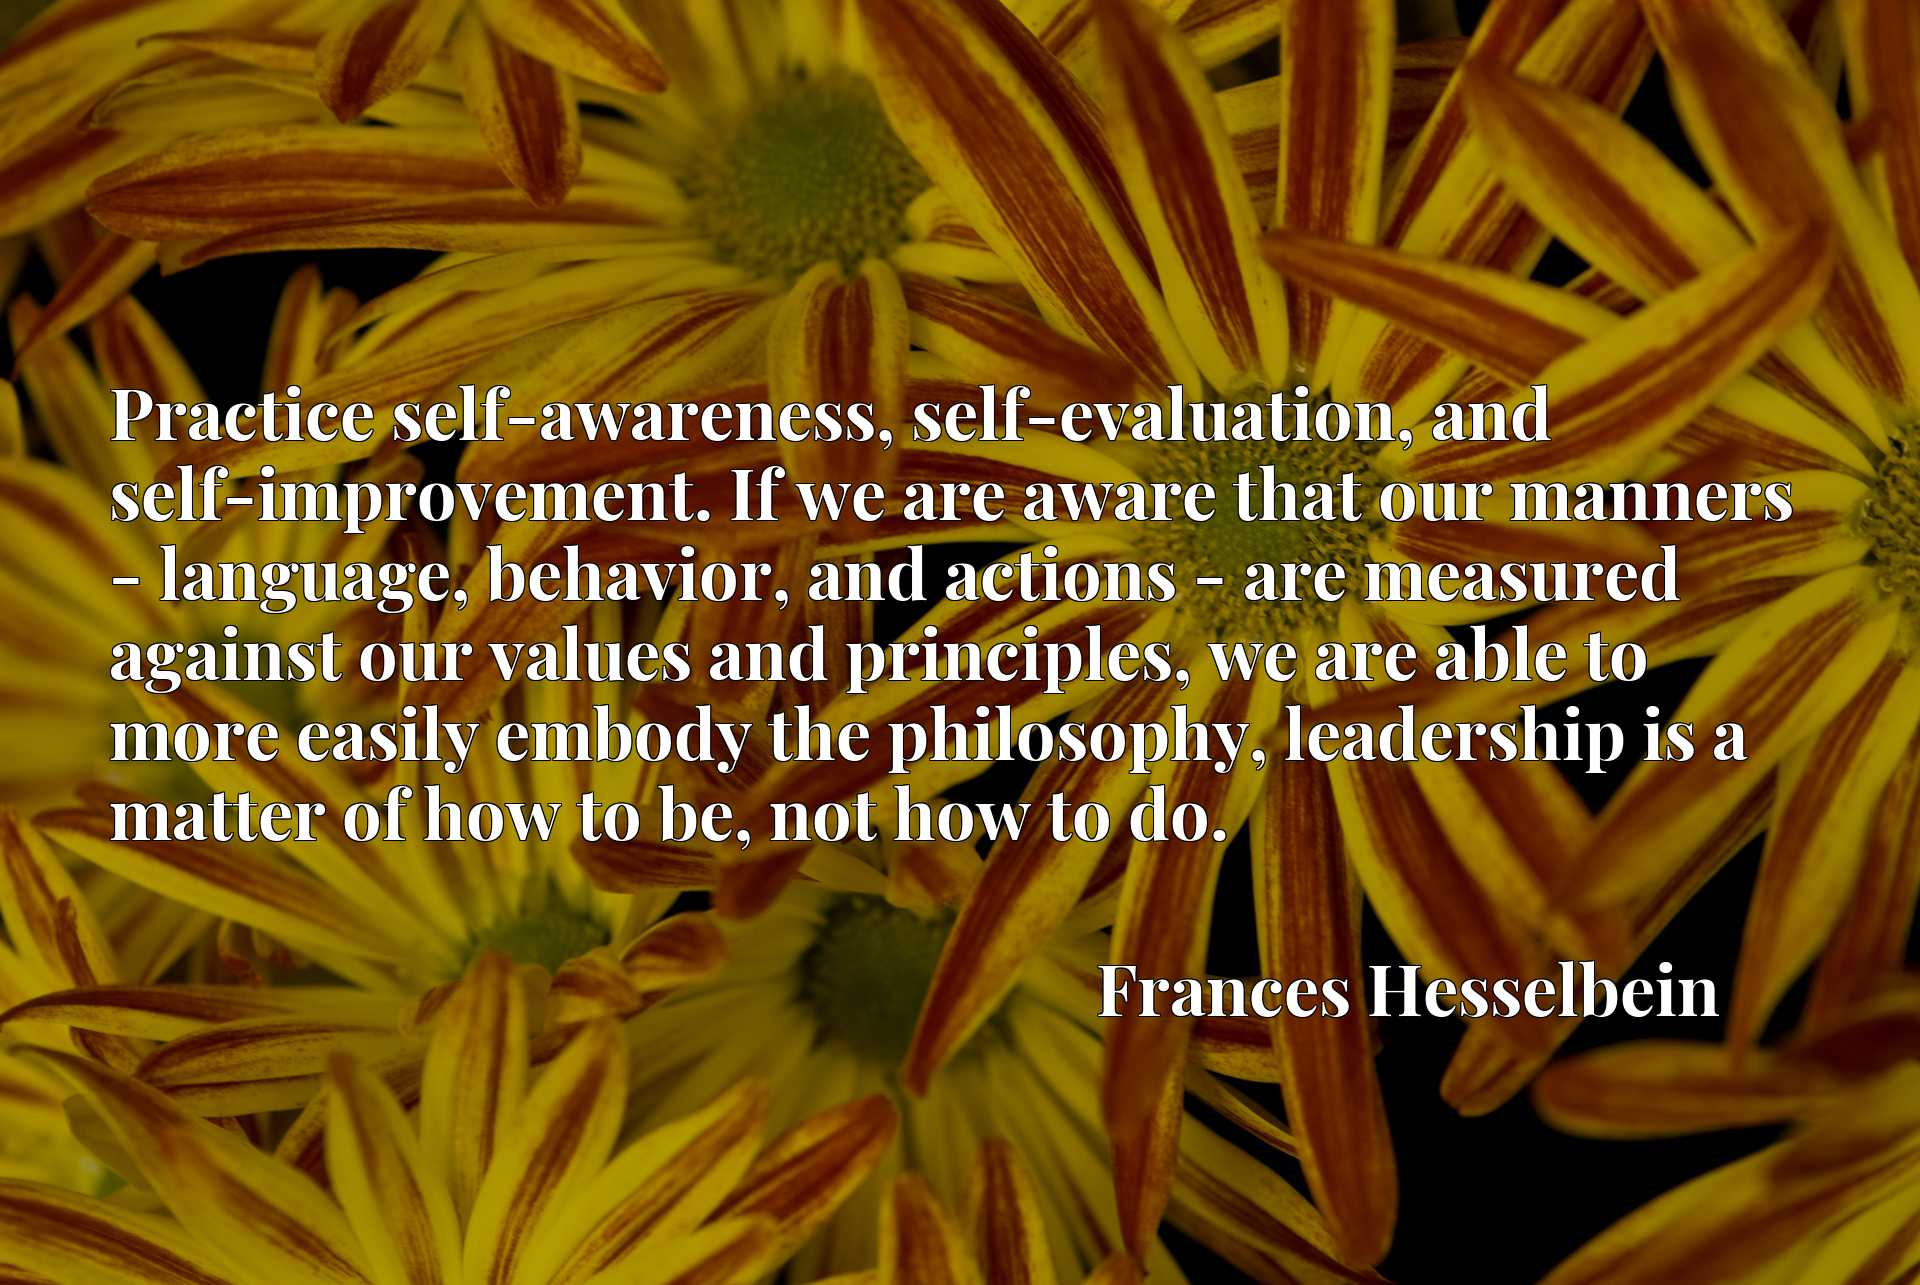 Practice self-awareness, self-evaluation, and self-improvement. If we are aware that our manners - language, behavior, and actions - are measured against our values and principles, we are able to more easily embody the philosophy, leadership is a matter of how to be, not how to do.